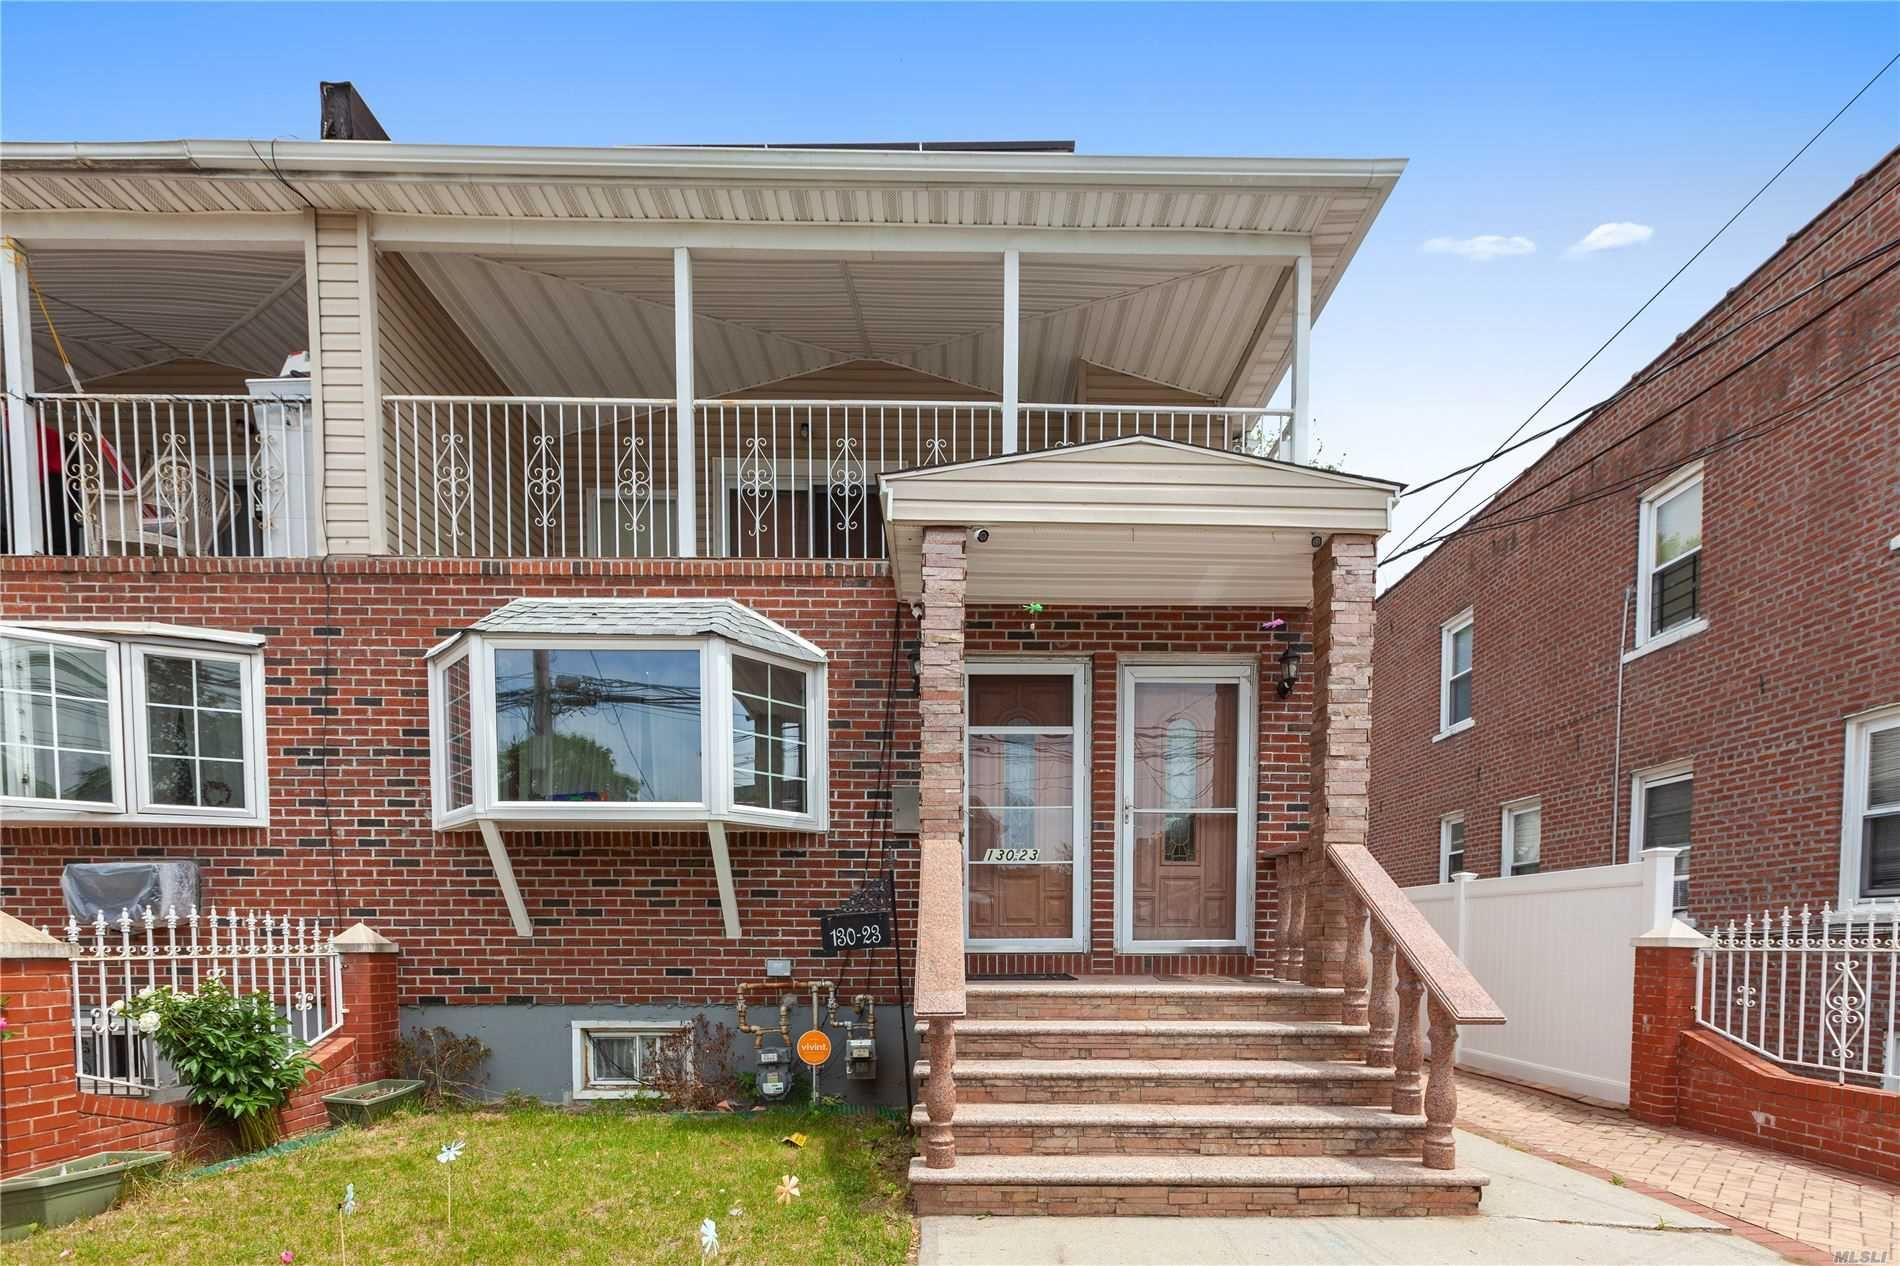 130-23 148th Street, Jamaica, NY 11436 - MLS#: 3218439